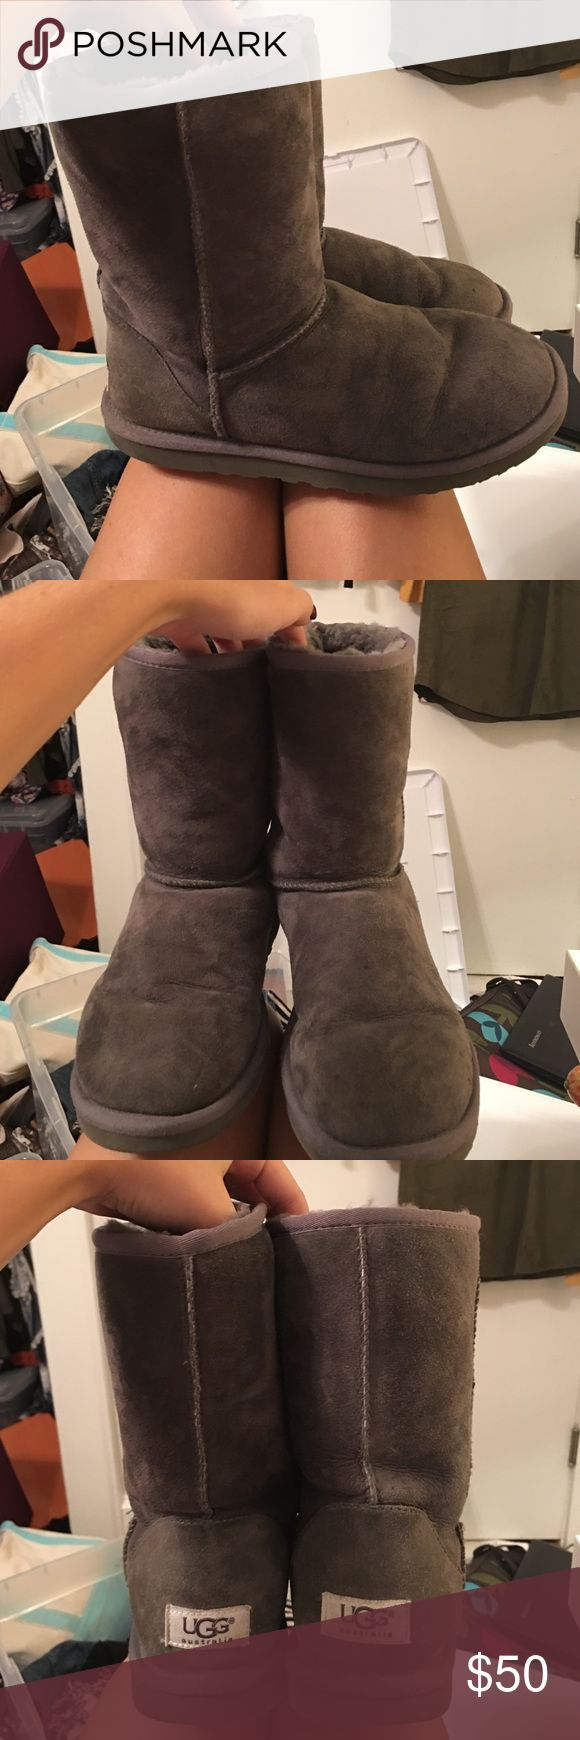 Classic short grey UGG boots Classic short grey UGG boots. Size:8. Super comfy and very warm, the perfect boots for fall/winter!!!! UGG Shoes Winter & Rain Boots